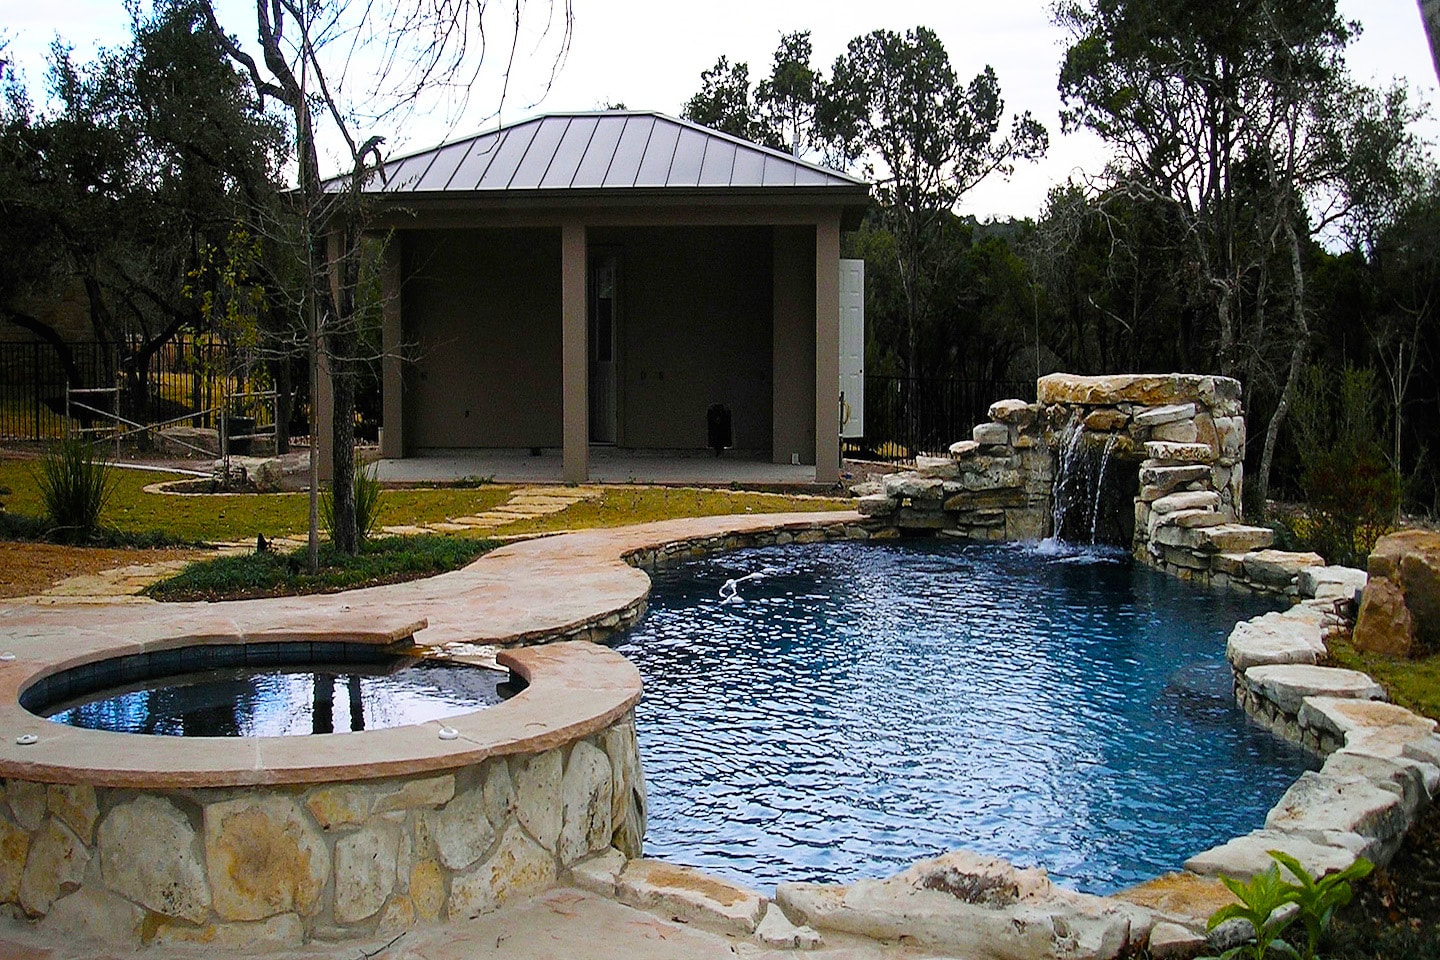 Grottos waterfalls paradise pools for Custom pool designs